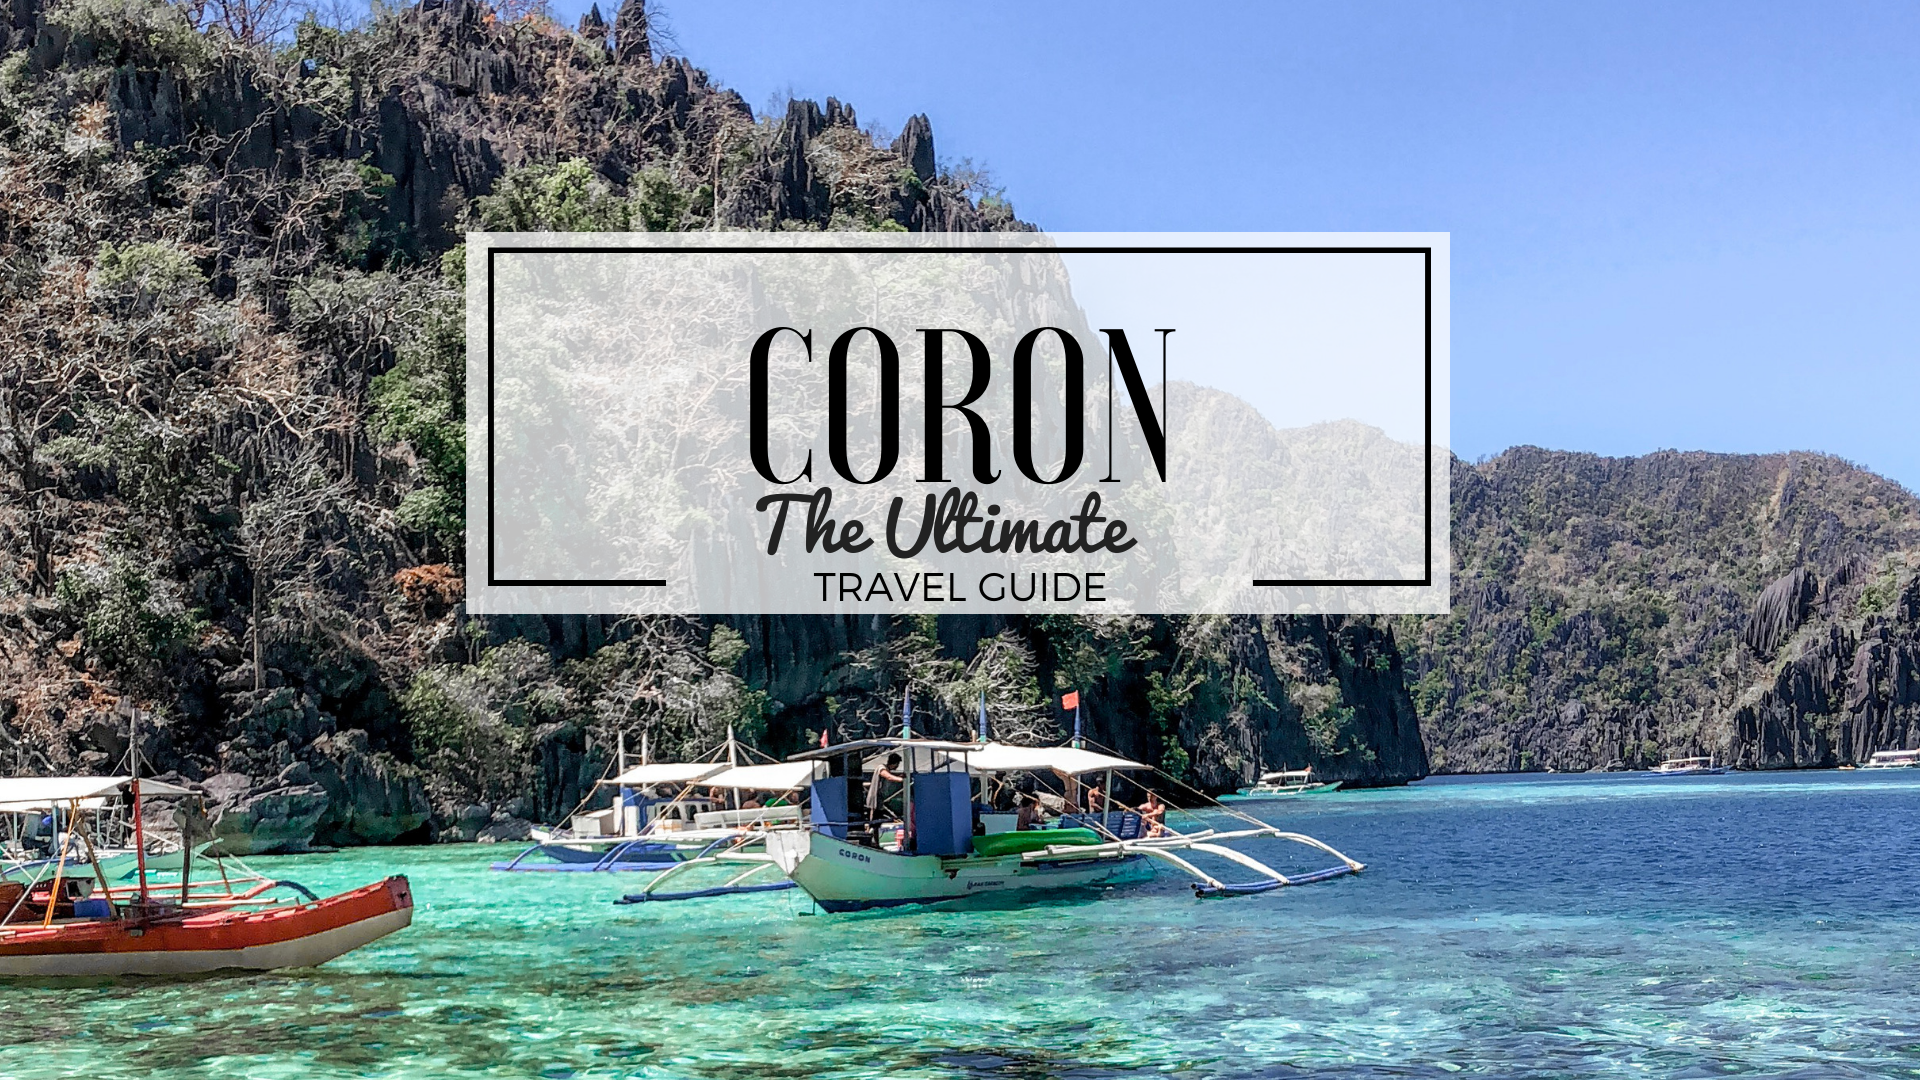 Coron The Ultimate Travel Guide